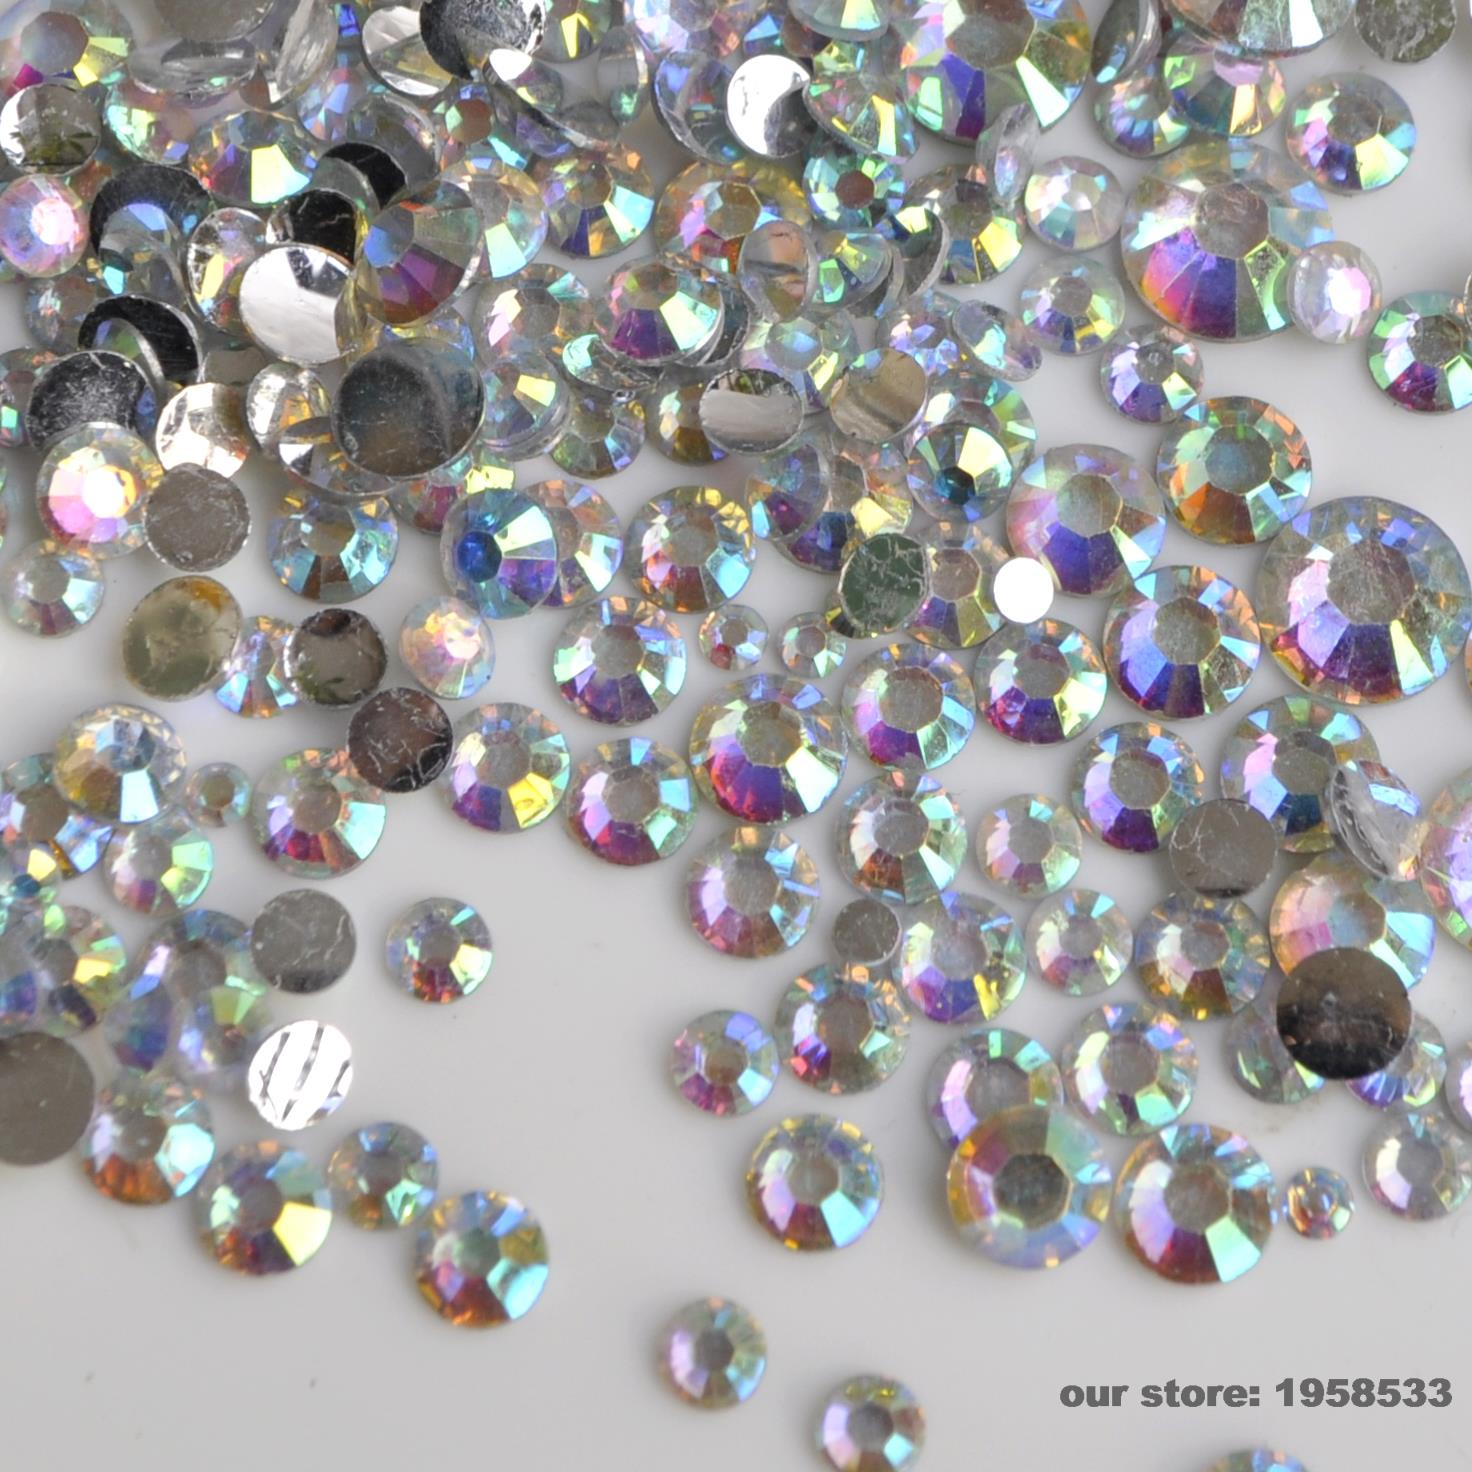 1000 pcs 2mm-6mm Mix Taille Clair AB Coloré Nail Strass 3D Nail Art Déco  Flatback Strass Glitter Gems besoin Colle N22 b3e034be9f8